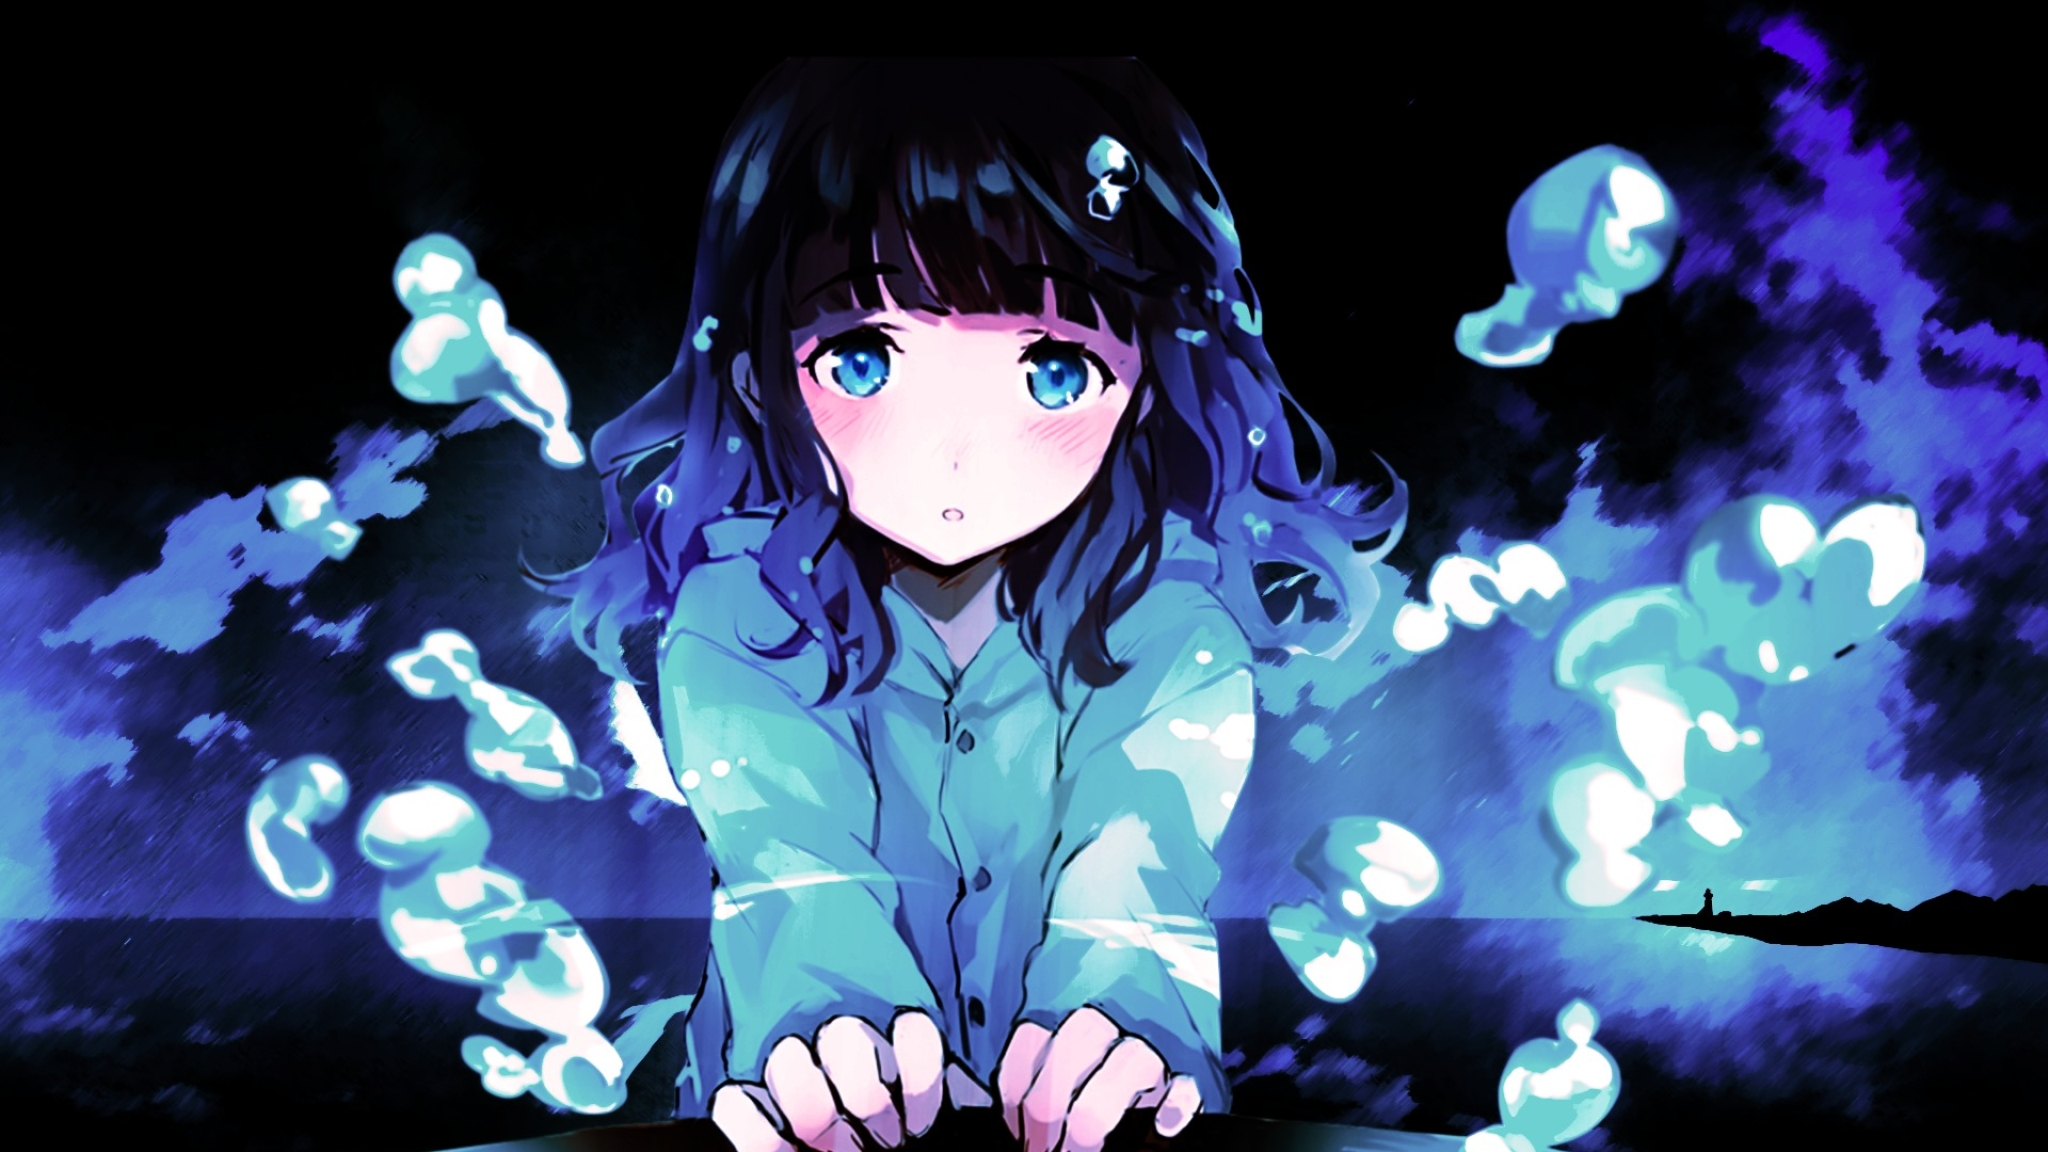 Anime sad girl full hd wallpaper - Sad anime wallpaper ...